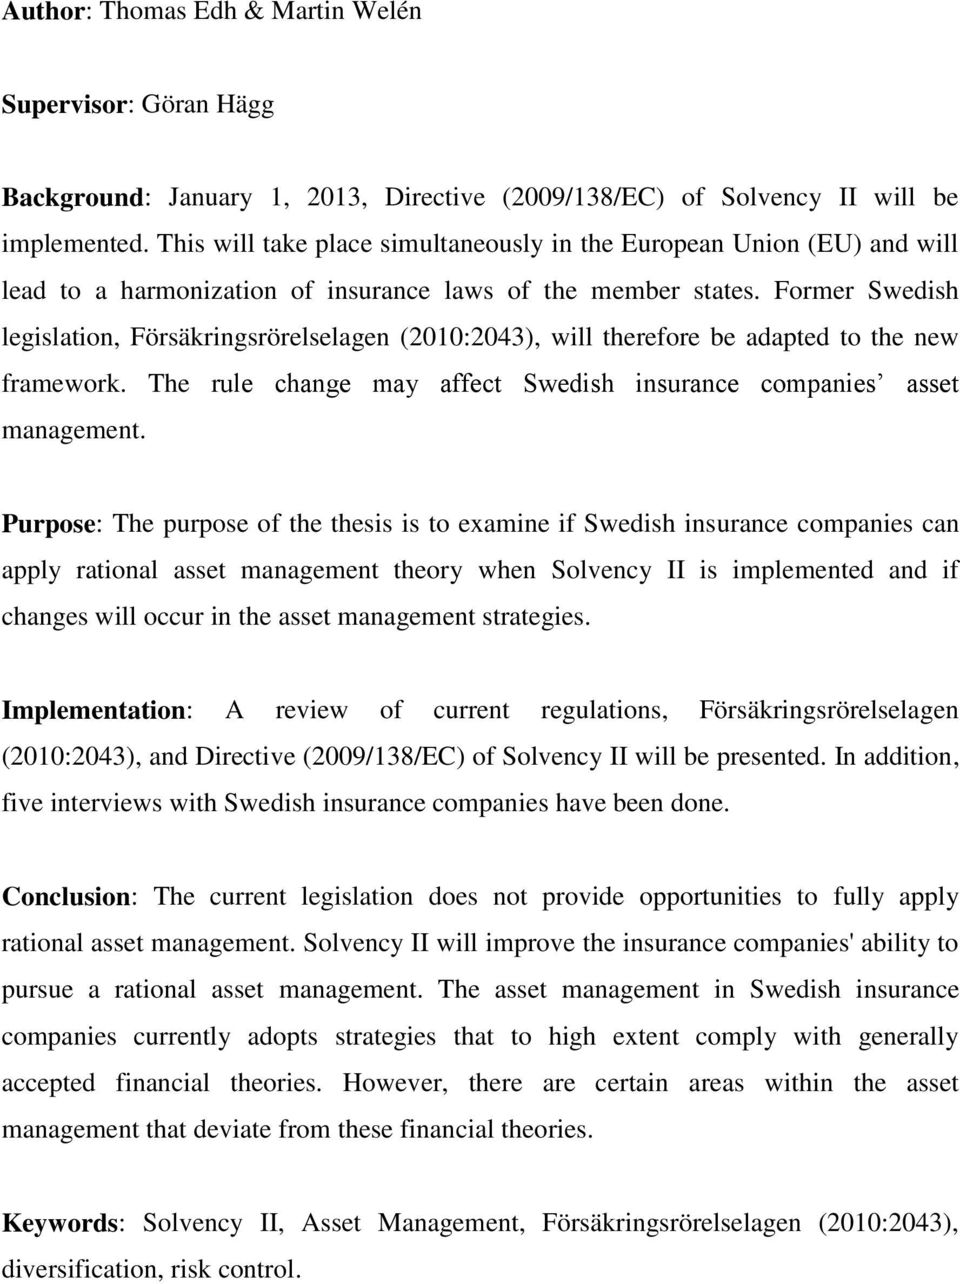 Former Swedish legislation, Försäkringsrörelselagen (2010:2043), will therefore be adapted to the new framework. The rule change may affect Swedish insurance companies asset management.